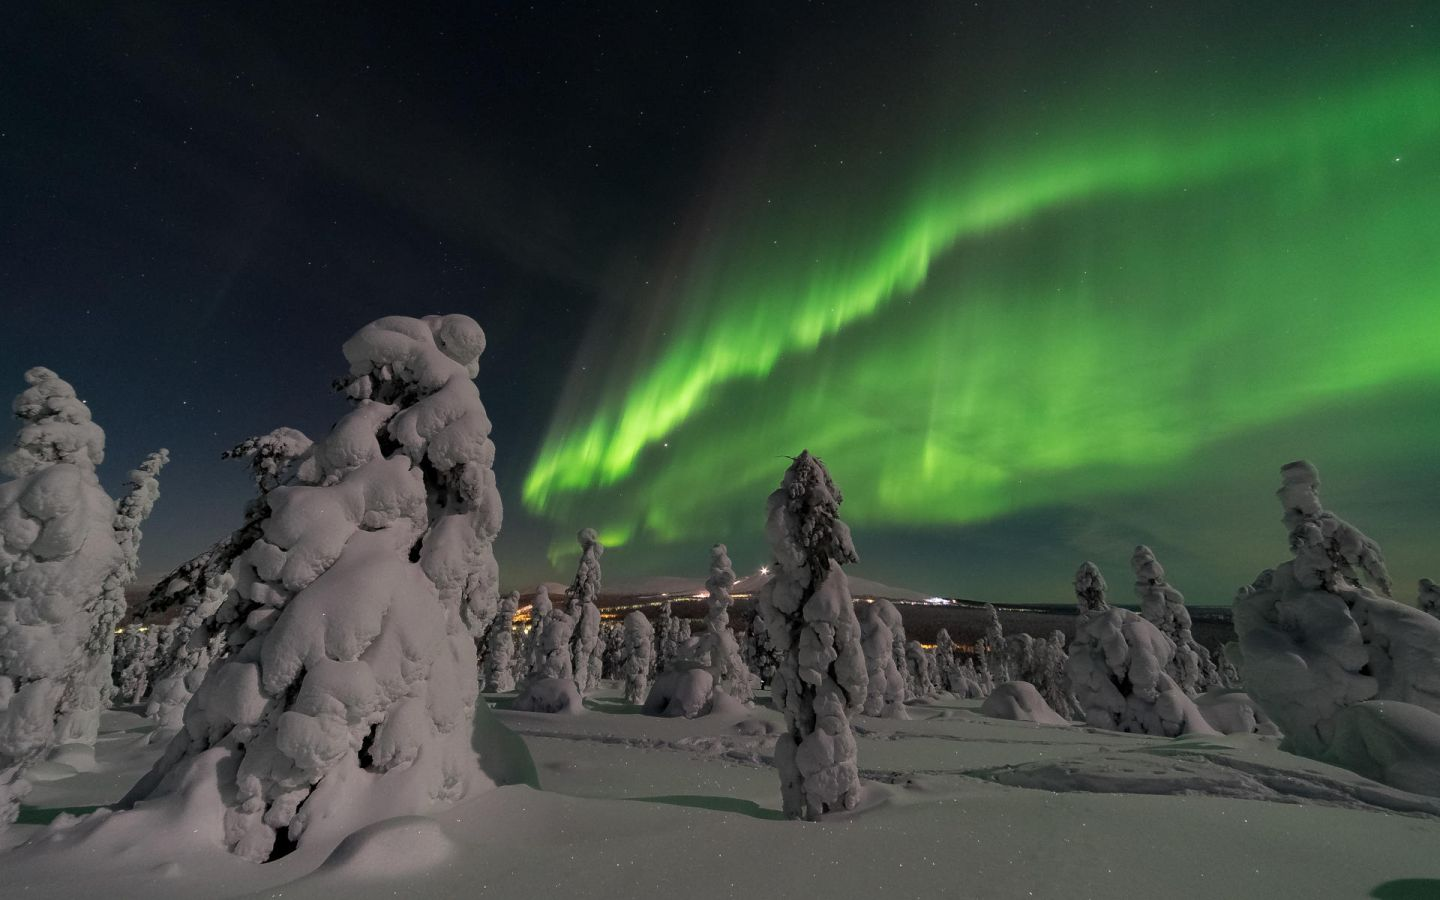 Northern Lights over snow crowned trees in Finnish Lapland in winter